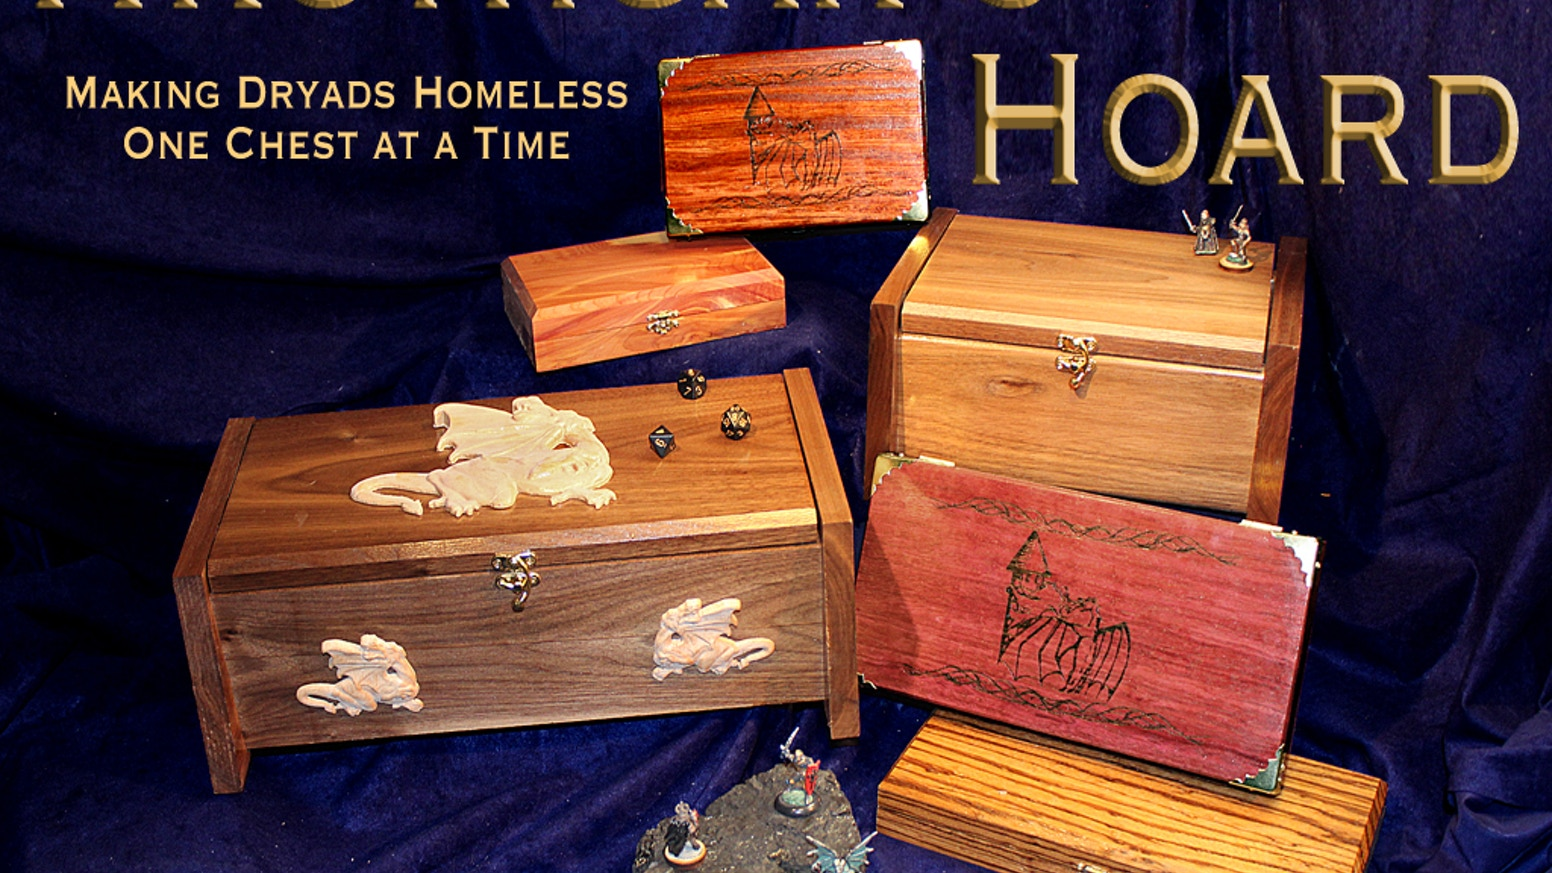 Hrothgar's Hoard continues its line of high quality wood products to use with your favorite games!